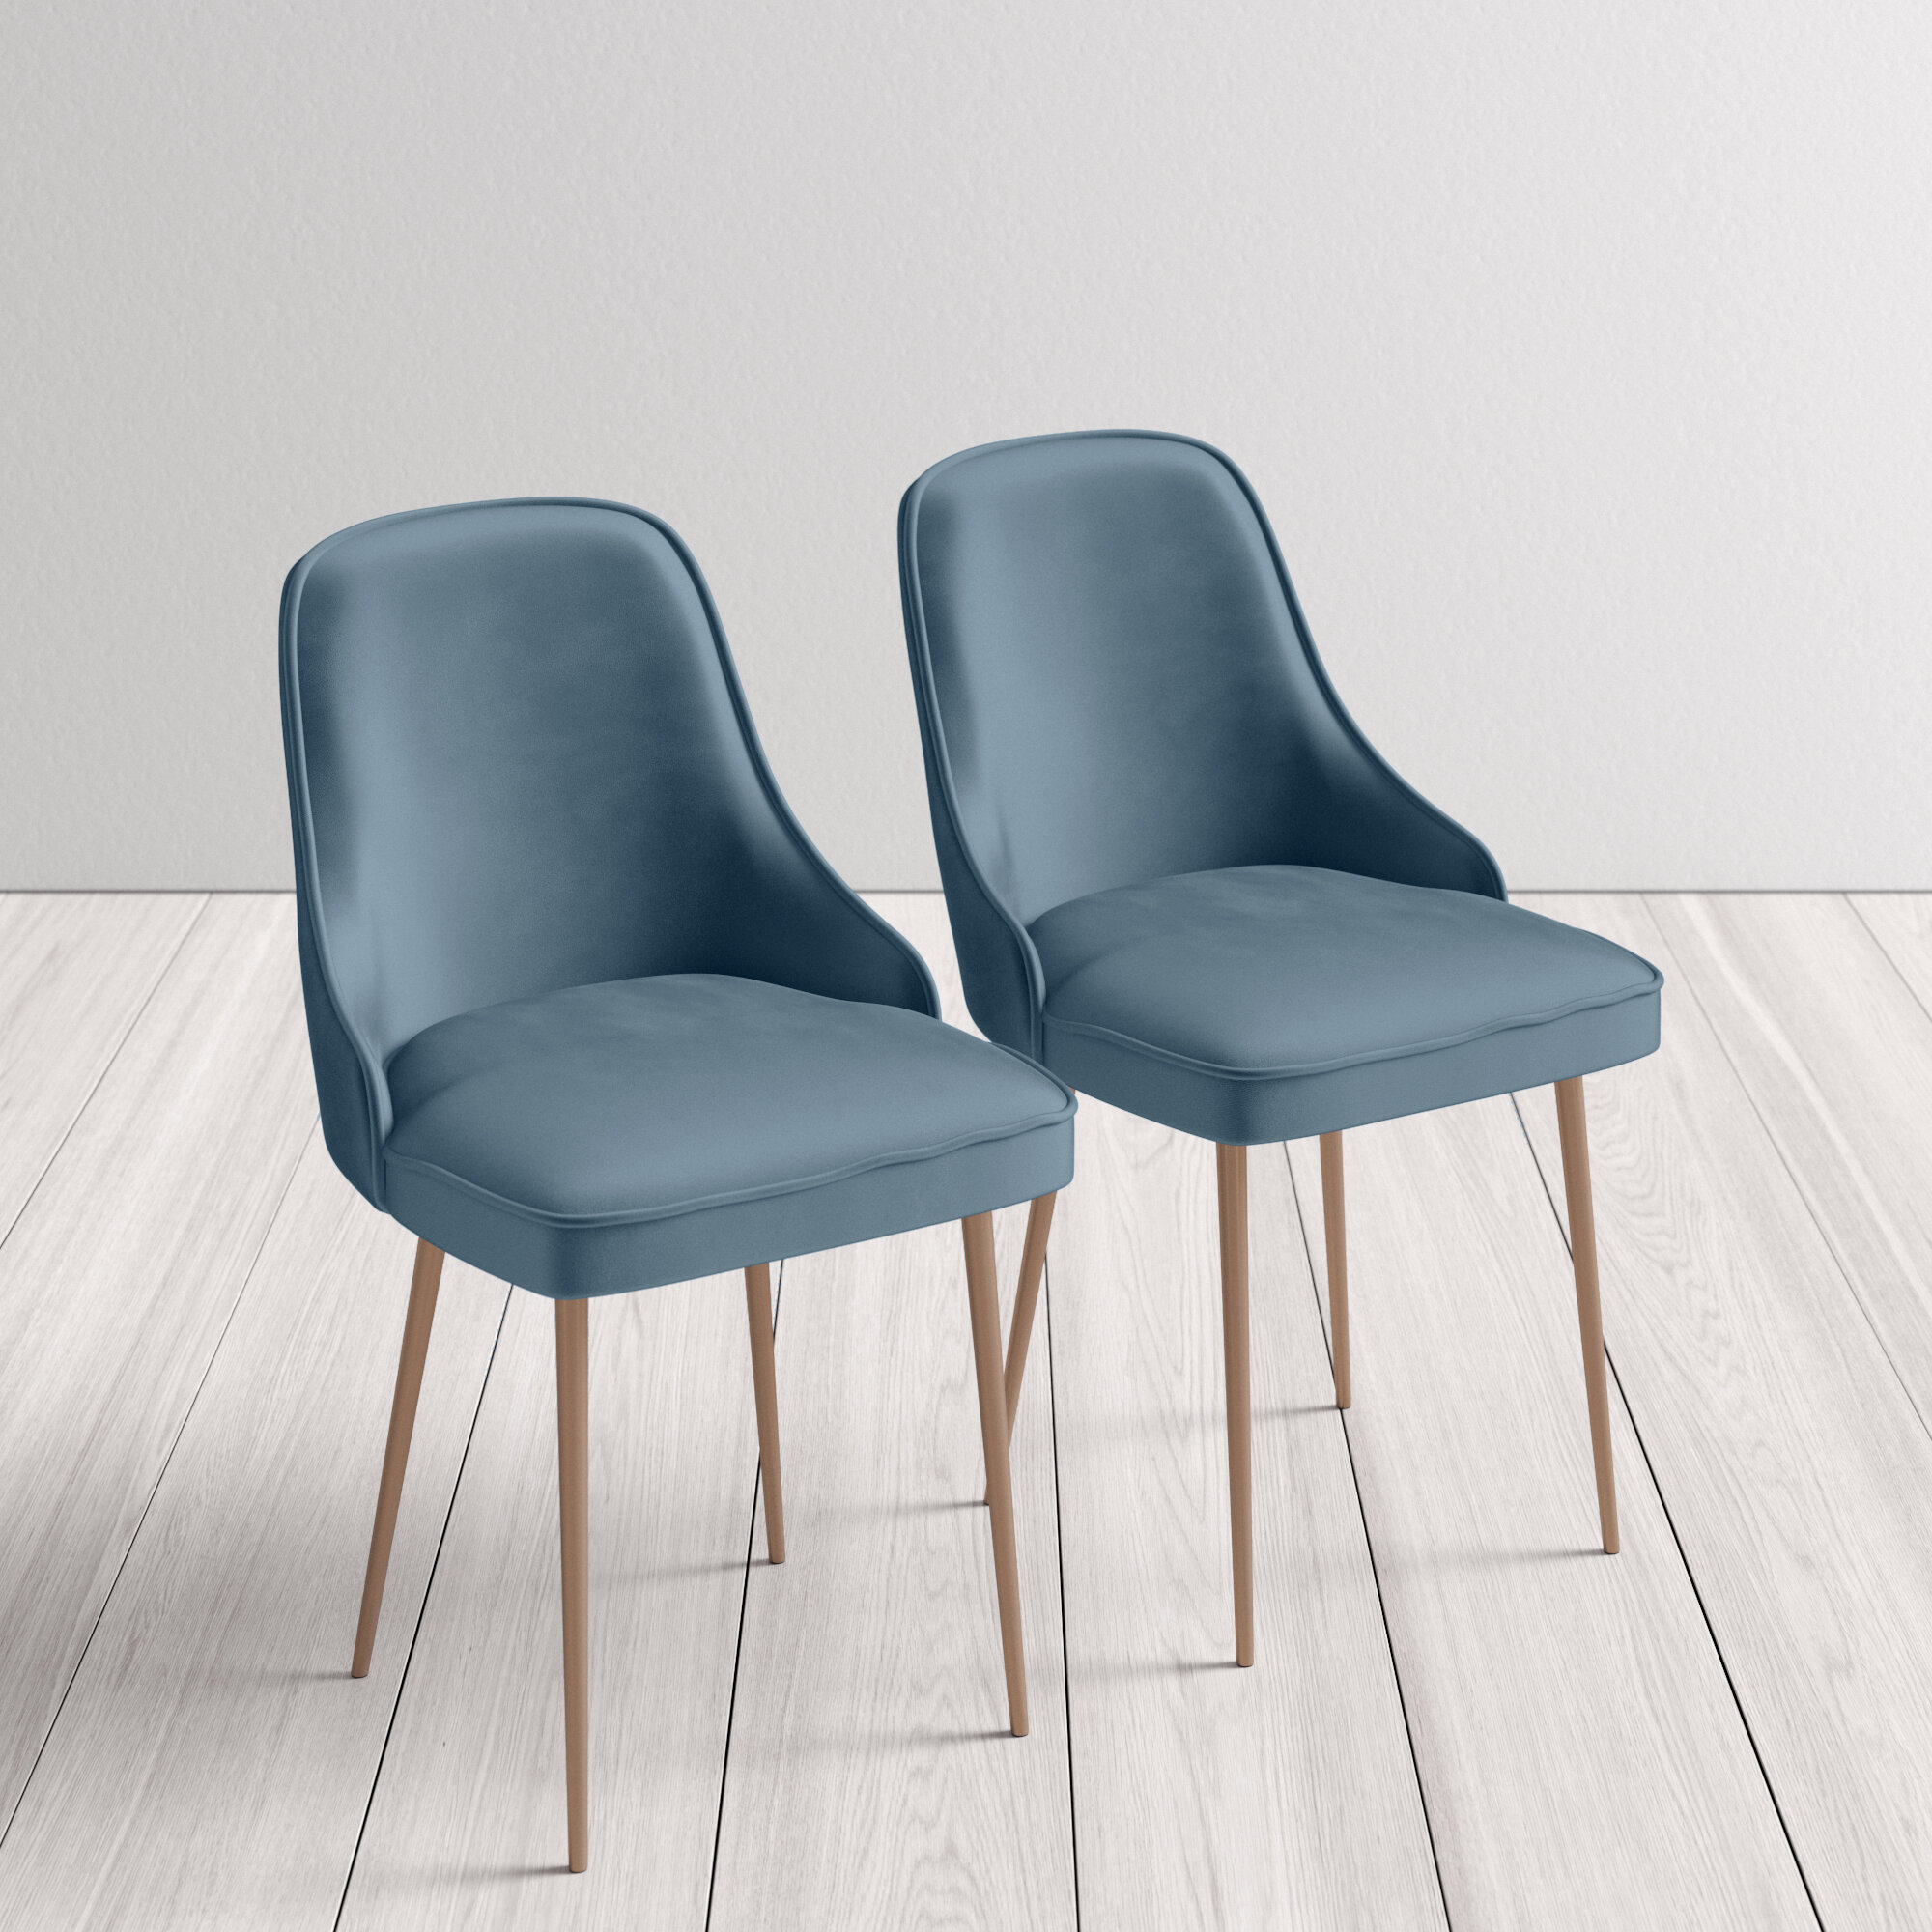 Strange Anson Upholstered Dining Chair Andrewgaddart Wooden Chair Designs For Living Room Andrewgaddartcom